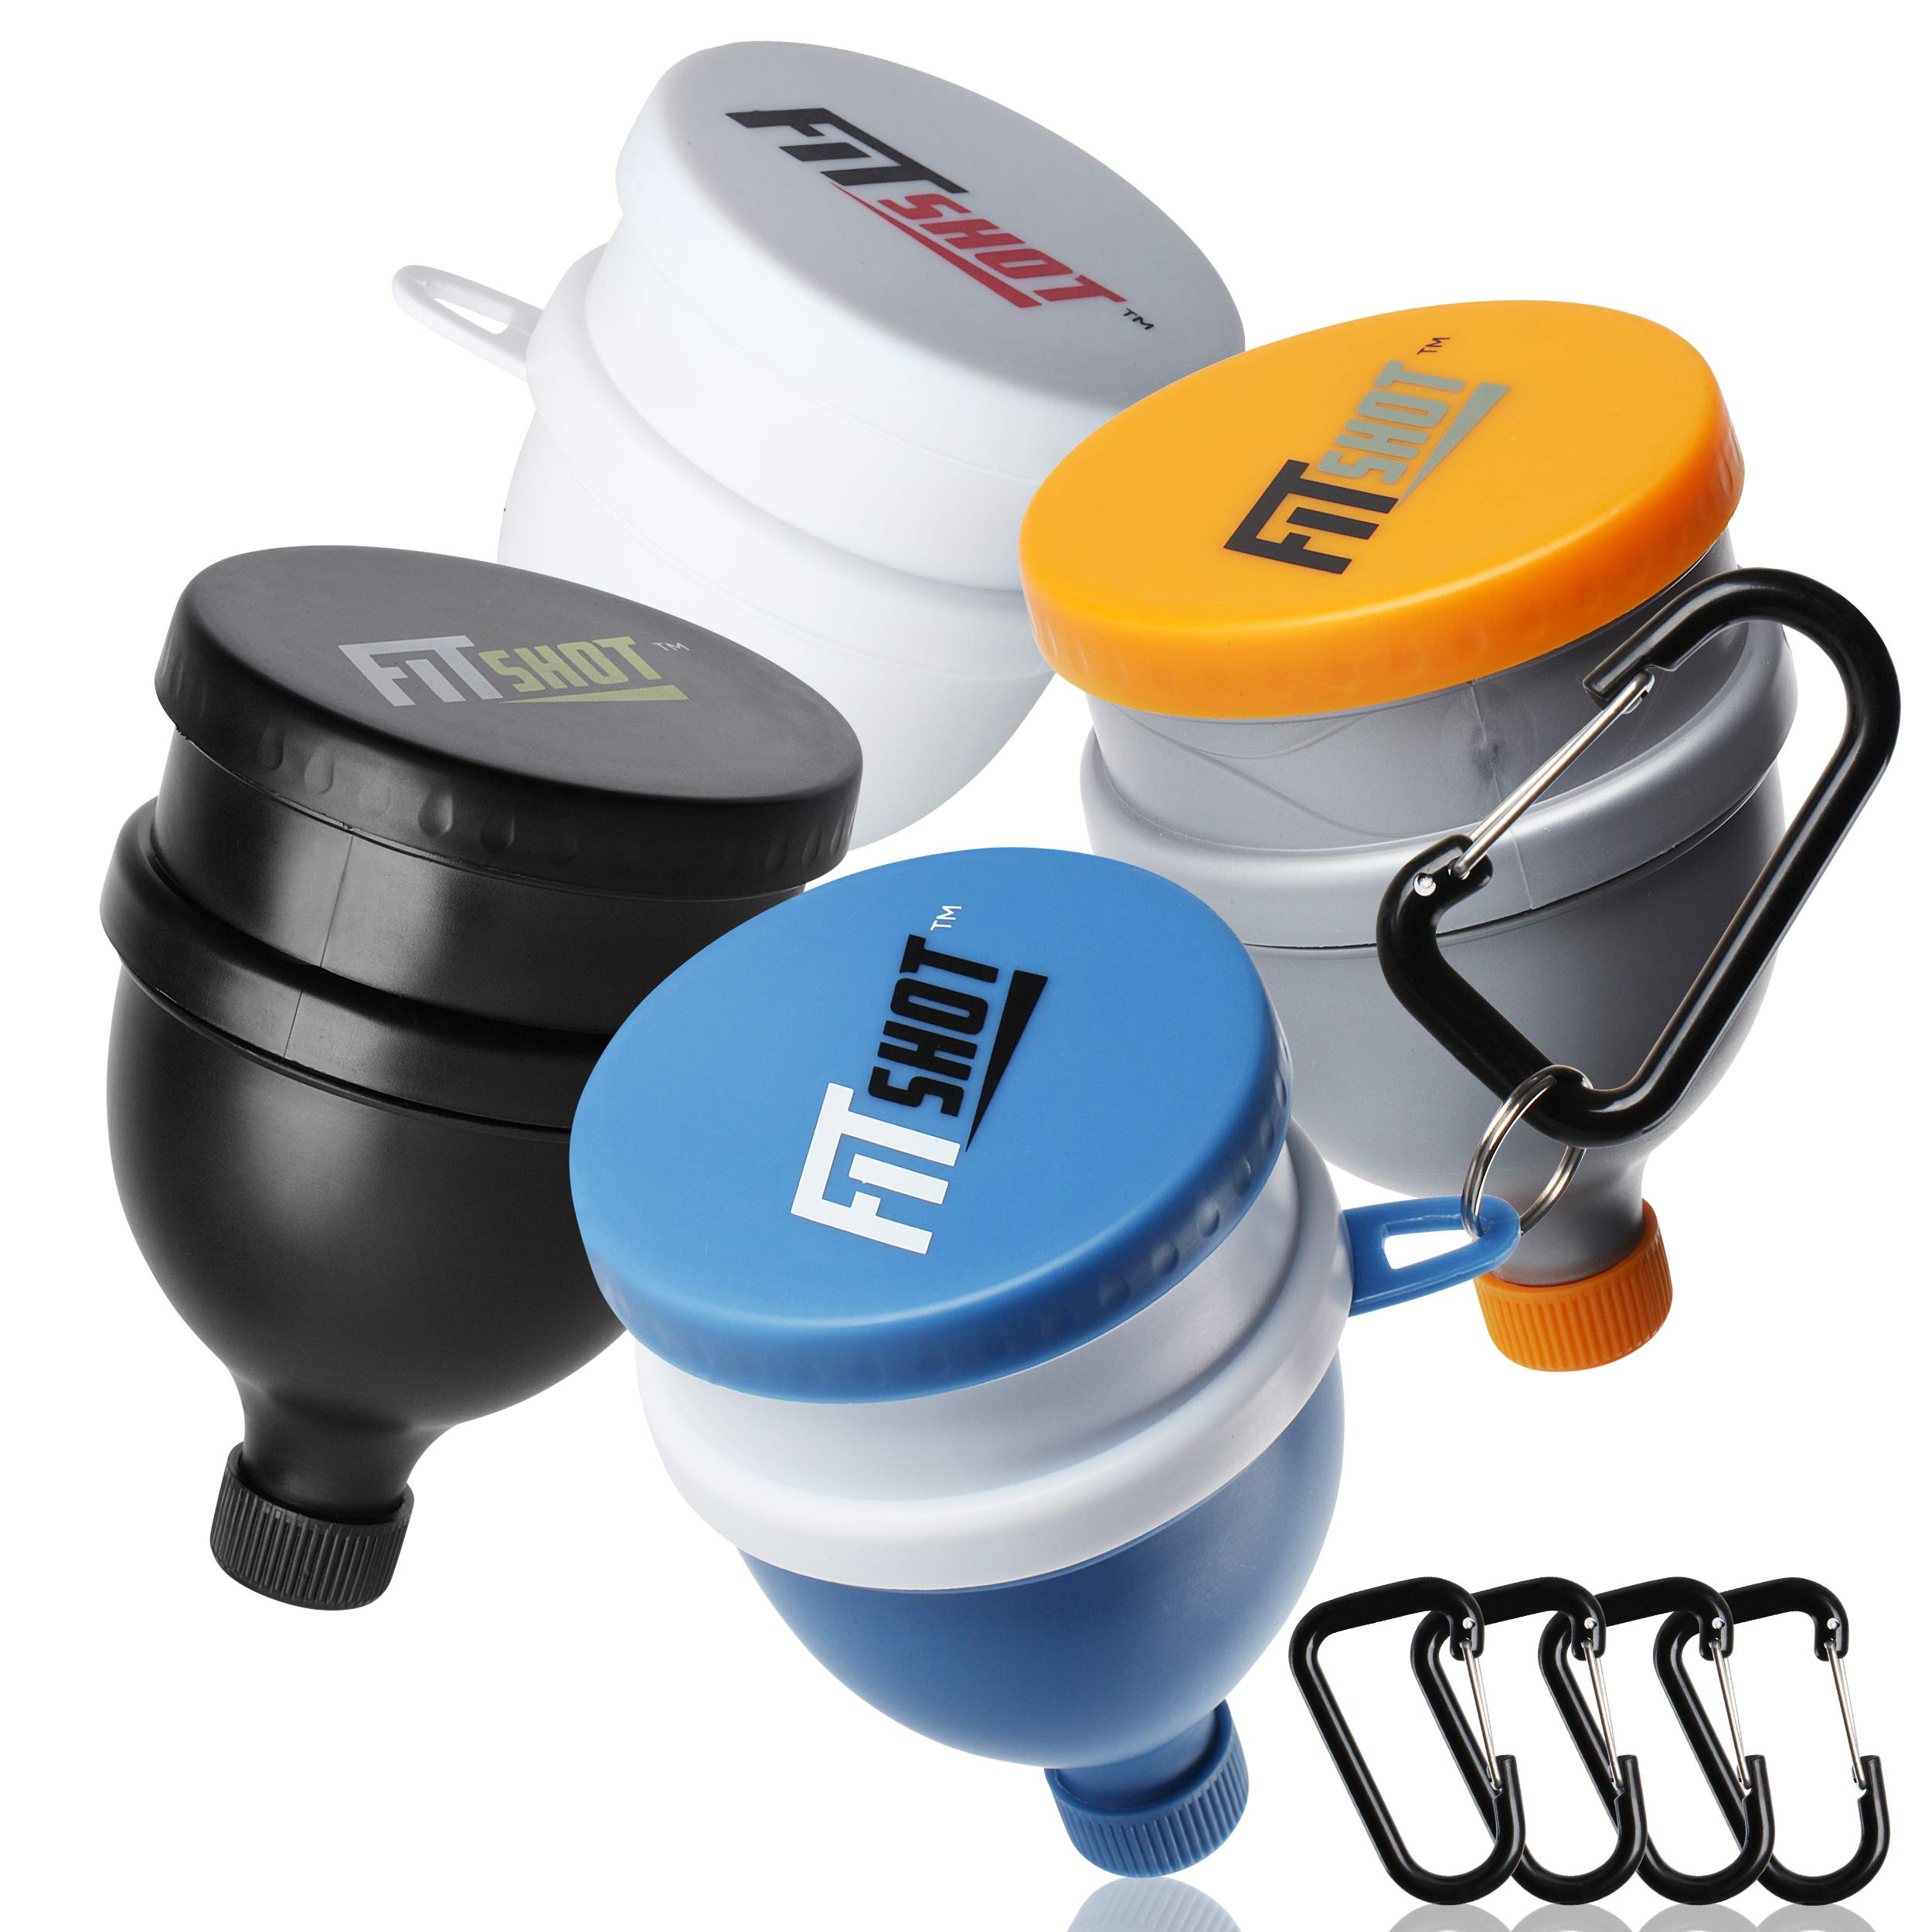 FitShot Protein Powder Funnel- Fill N Go Supplement Funnel with Keychain 4pack, Water Bottle Funnels, BPA Free, 2 in 1,Portable 120ml with Pillbox,Pre Workout Protein Powder Container to go by FitShot